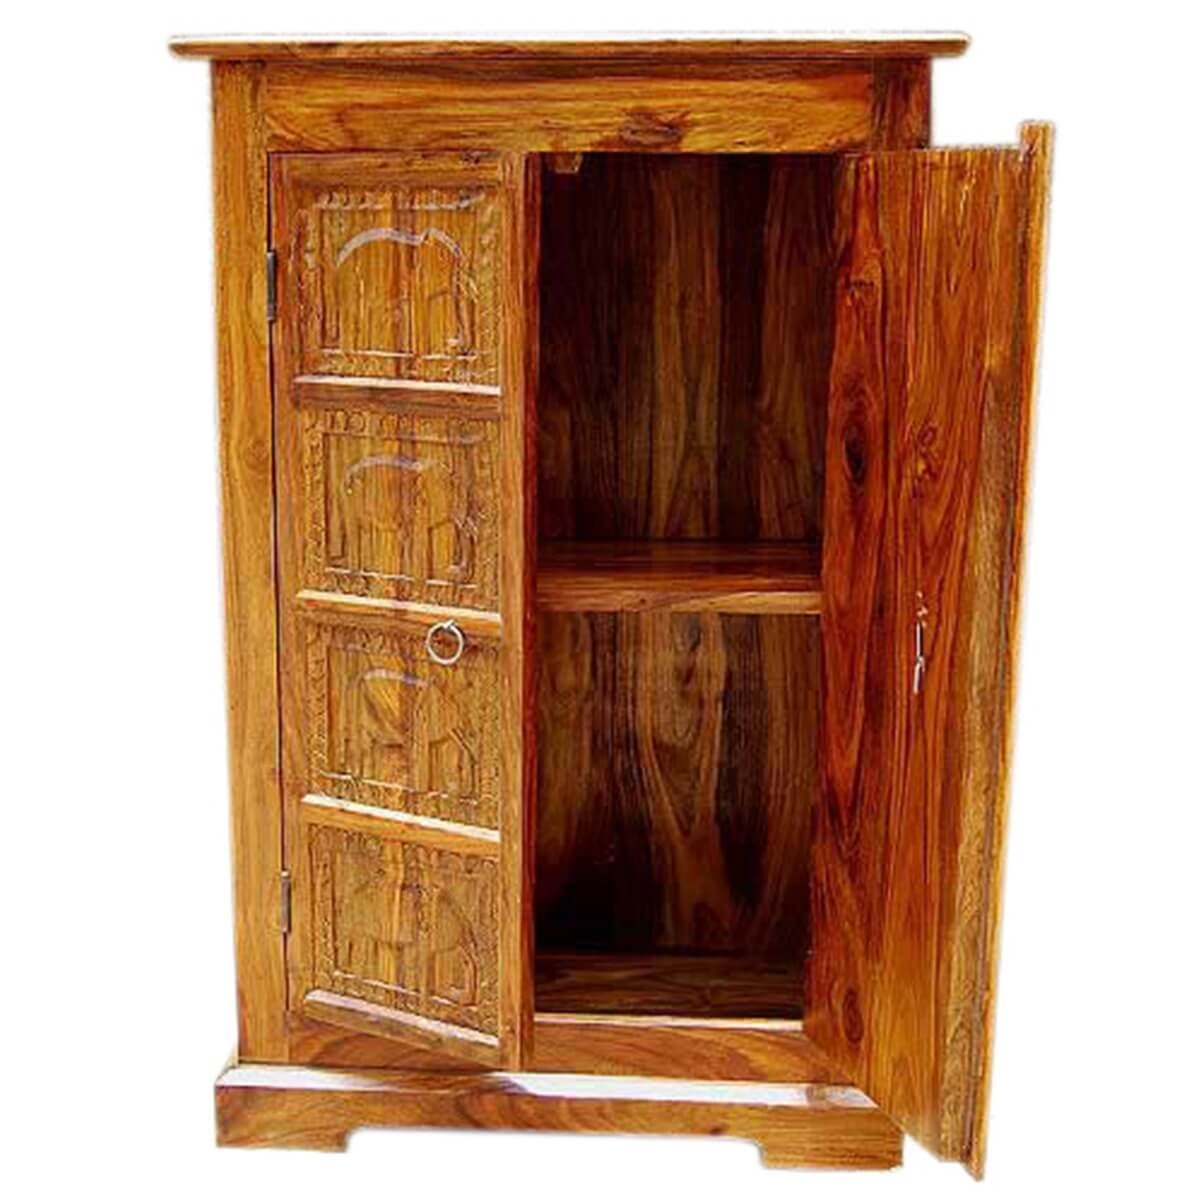 Mendon solid wood handcarved door armoire